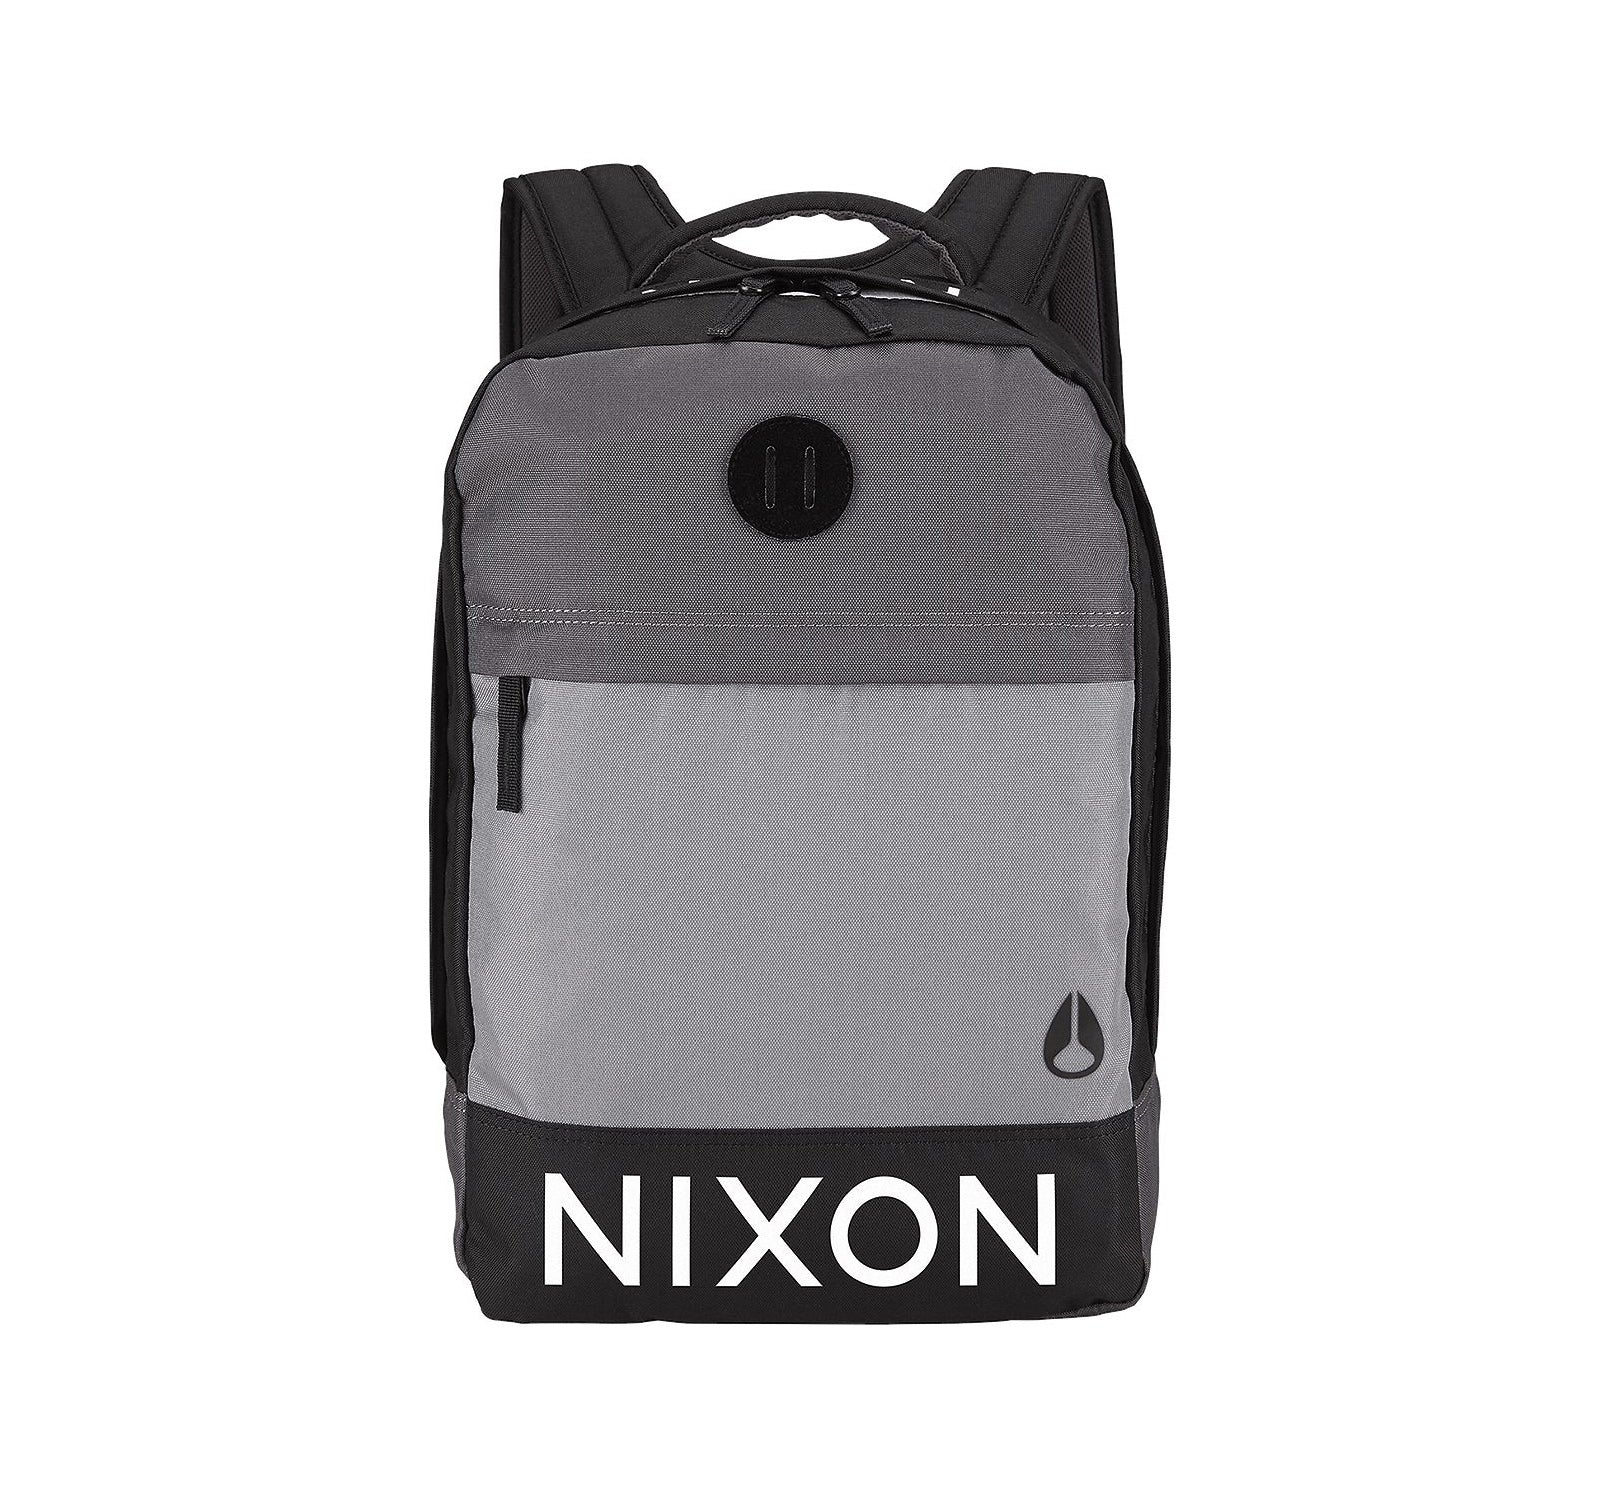 Nixon Beacons Men's Backpack - Black/Dark Grey